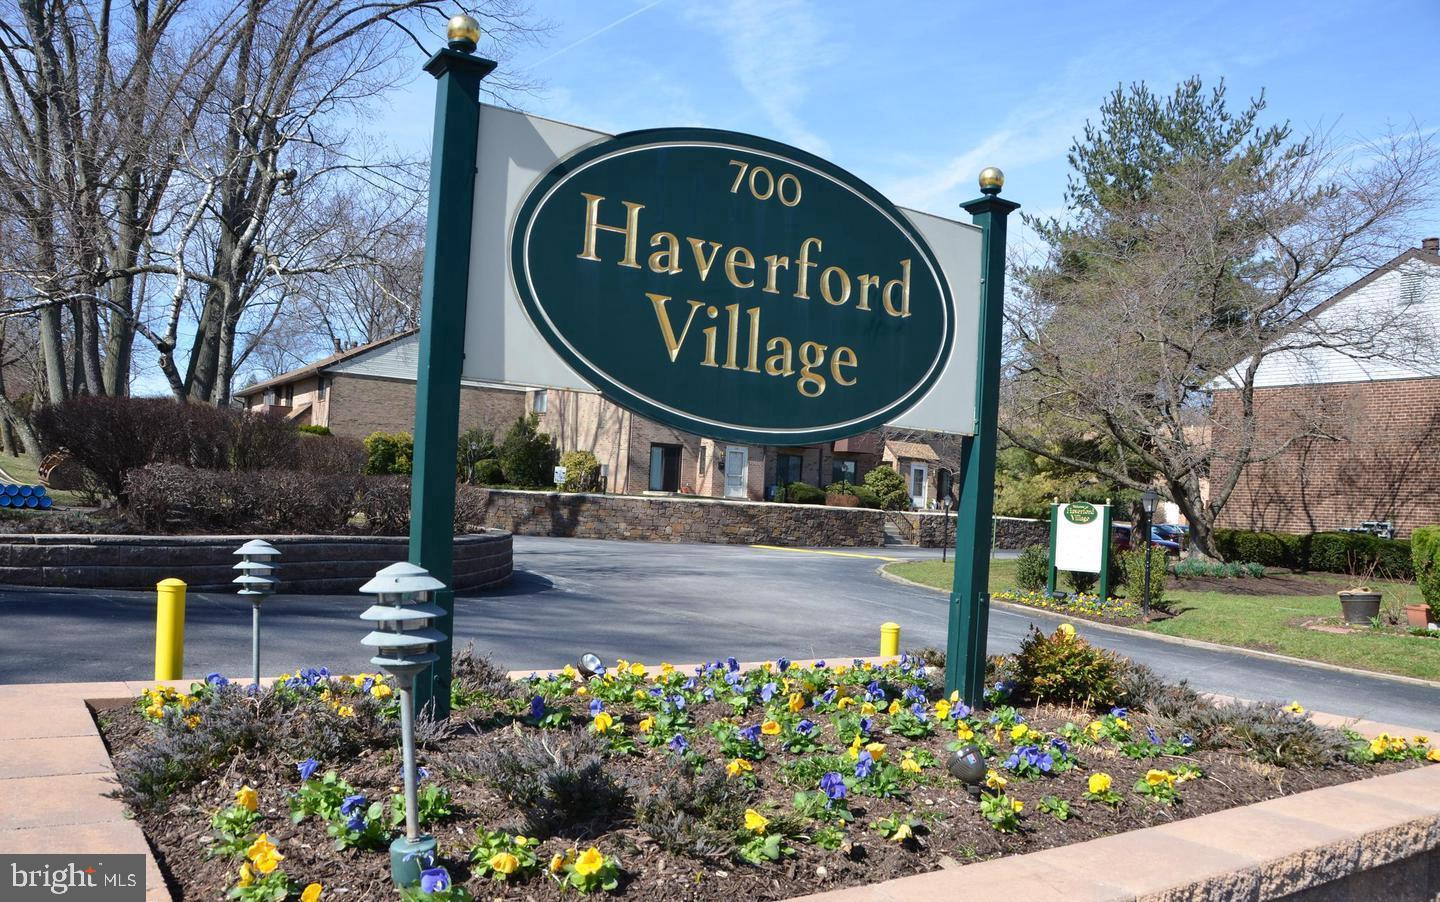 You won't be disappointed with this 2 story, 2 bedroom, 2 full and 1 half bath condo-townhome in  desirable Ardmore in the conveniently located Haverford Village and the highly rated Haverford Township school district.  The first floor of this home features a  foyer with coat closet; spacious living room with gas fireplace and sliding glass doors to private patio;  formal dining room that is open to the kitchen with wood cabinets,  electric stove, dishwasher and small breakfast bar;  laundry room with washer/dryer (included as is) and convenient powder room.    The second floor features a large main bedroom with  sliding glass doors to a deck, walk-in closet, ceiling fan and attached bath with stall shower;  second bedroom with attached  bath with tub shower;  a hall linen closet  and storage closet complete the second floor.  Additional features: low HOA fee to include outdoor community pool, lawn maintenance, common area maintenance, snow removal, trash collection and water; convenient location close to Nature Trail, Haverford College, Elwell Playground, walking distance to public transportation, restaurants, shopping and so much more!! Make your appointment today!!